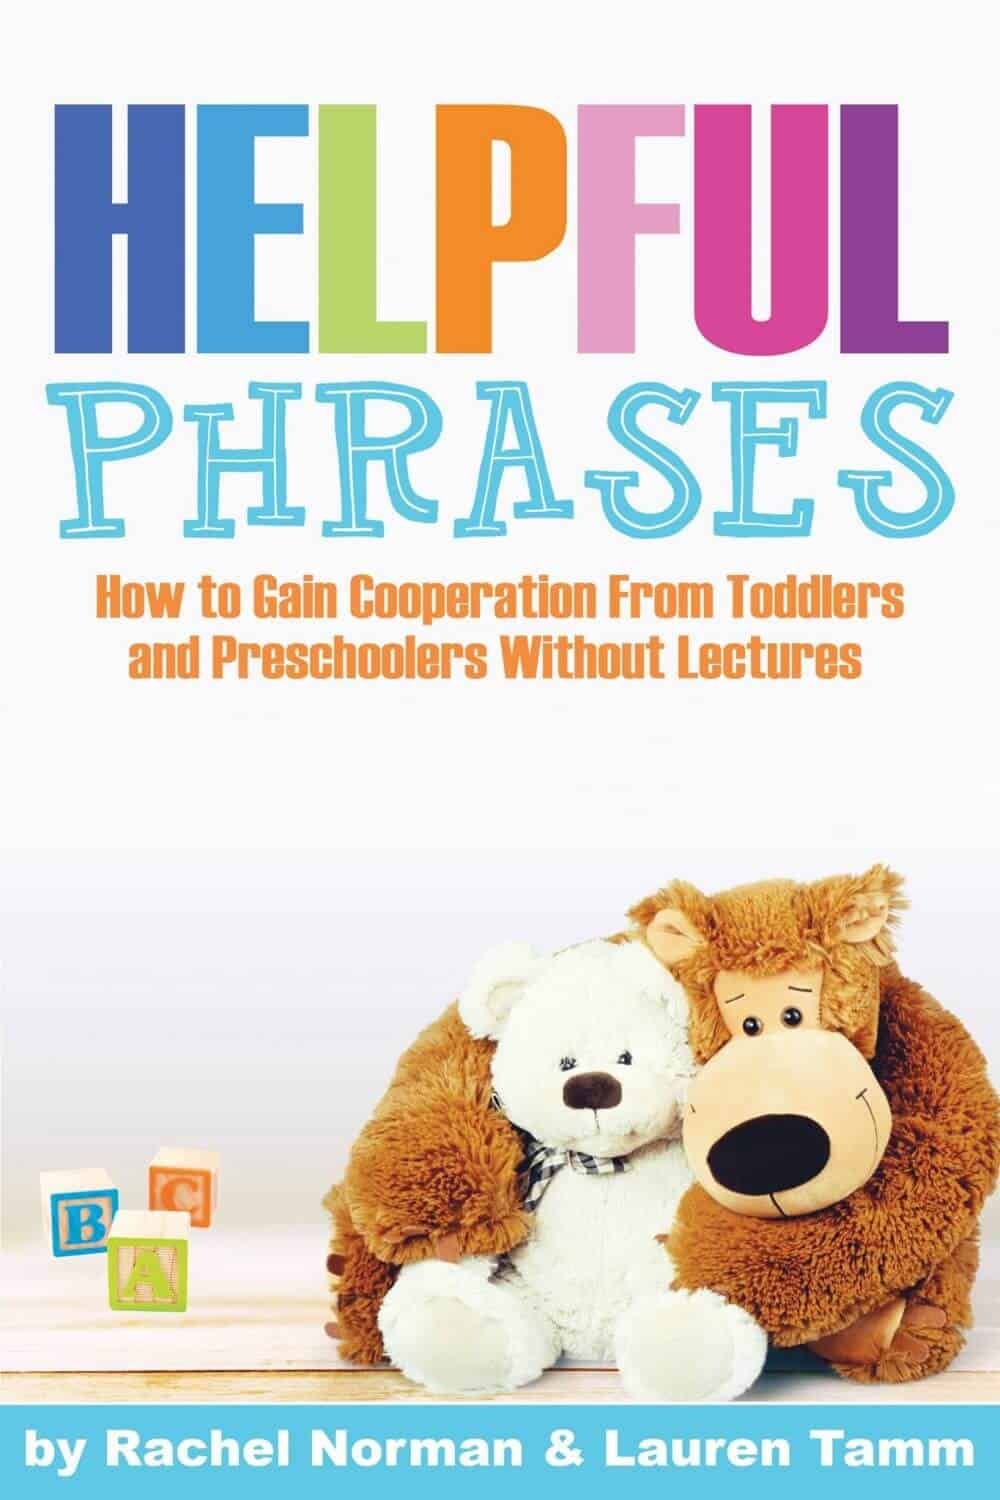 Helpful phrases to help your toddler and preschooler listen better without lectures or headaches!